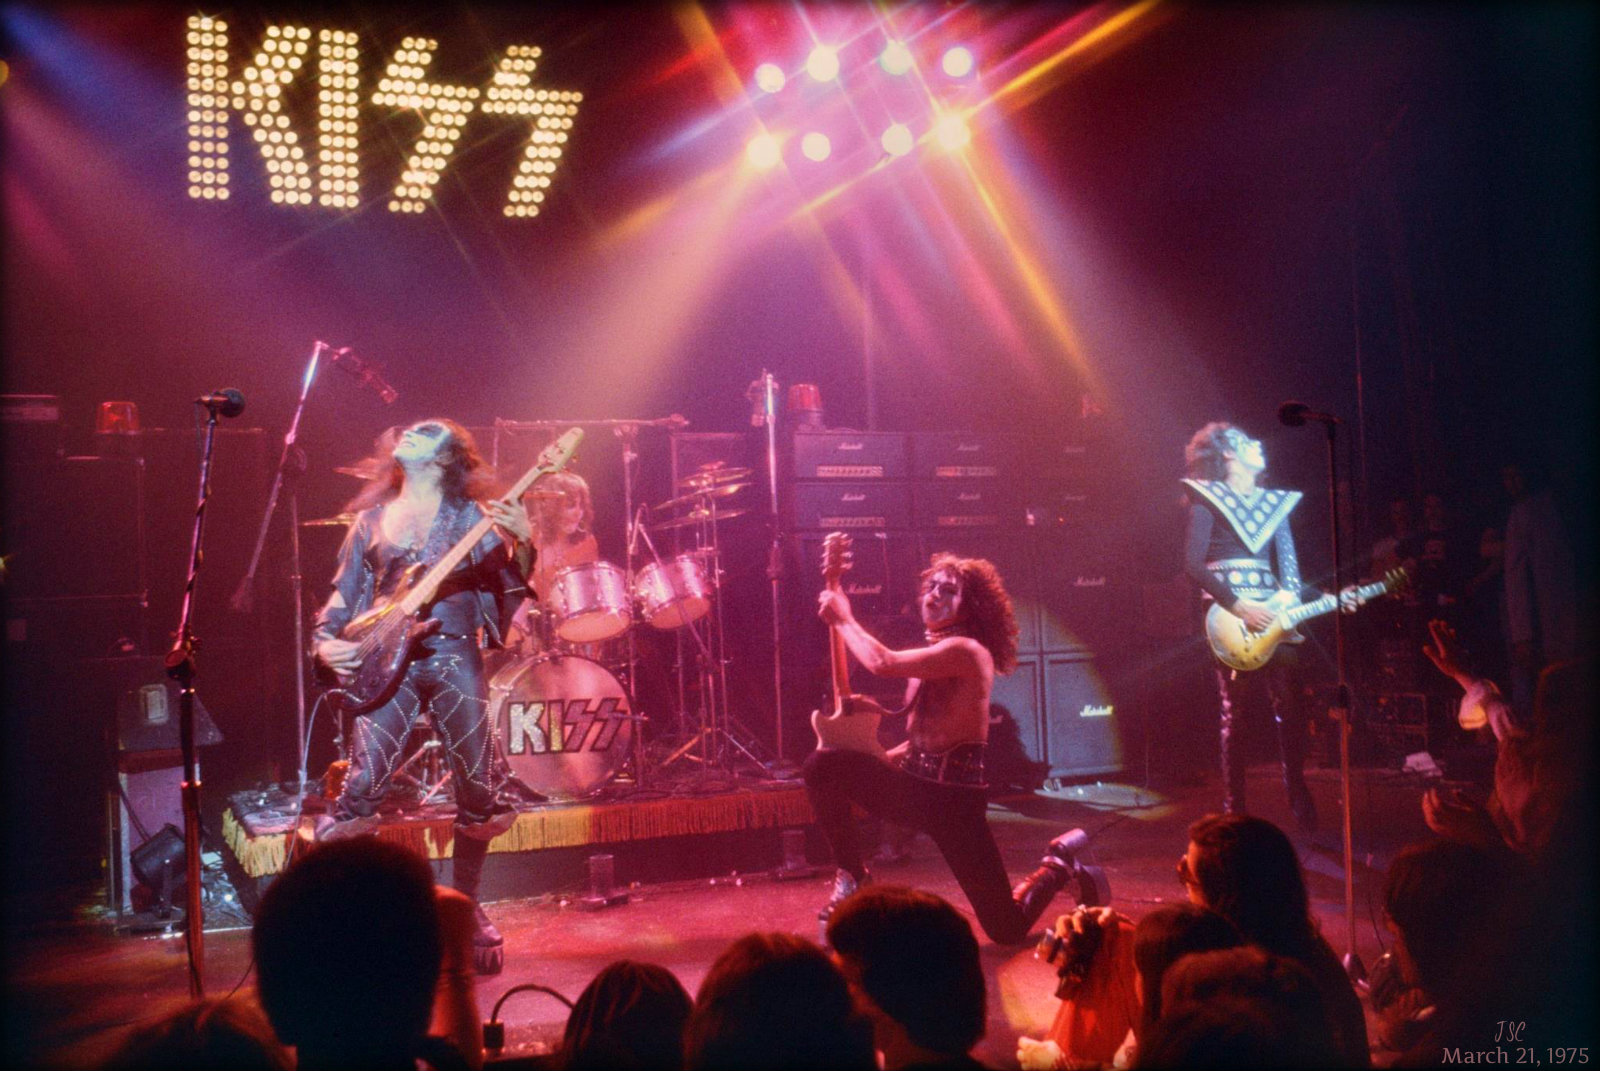 Kiss - Live In New York 23.11.98 - (Psycho Circus Tour)